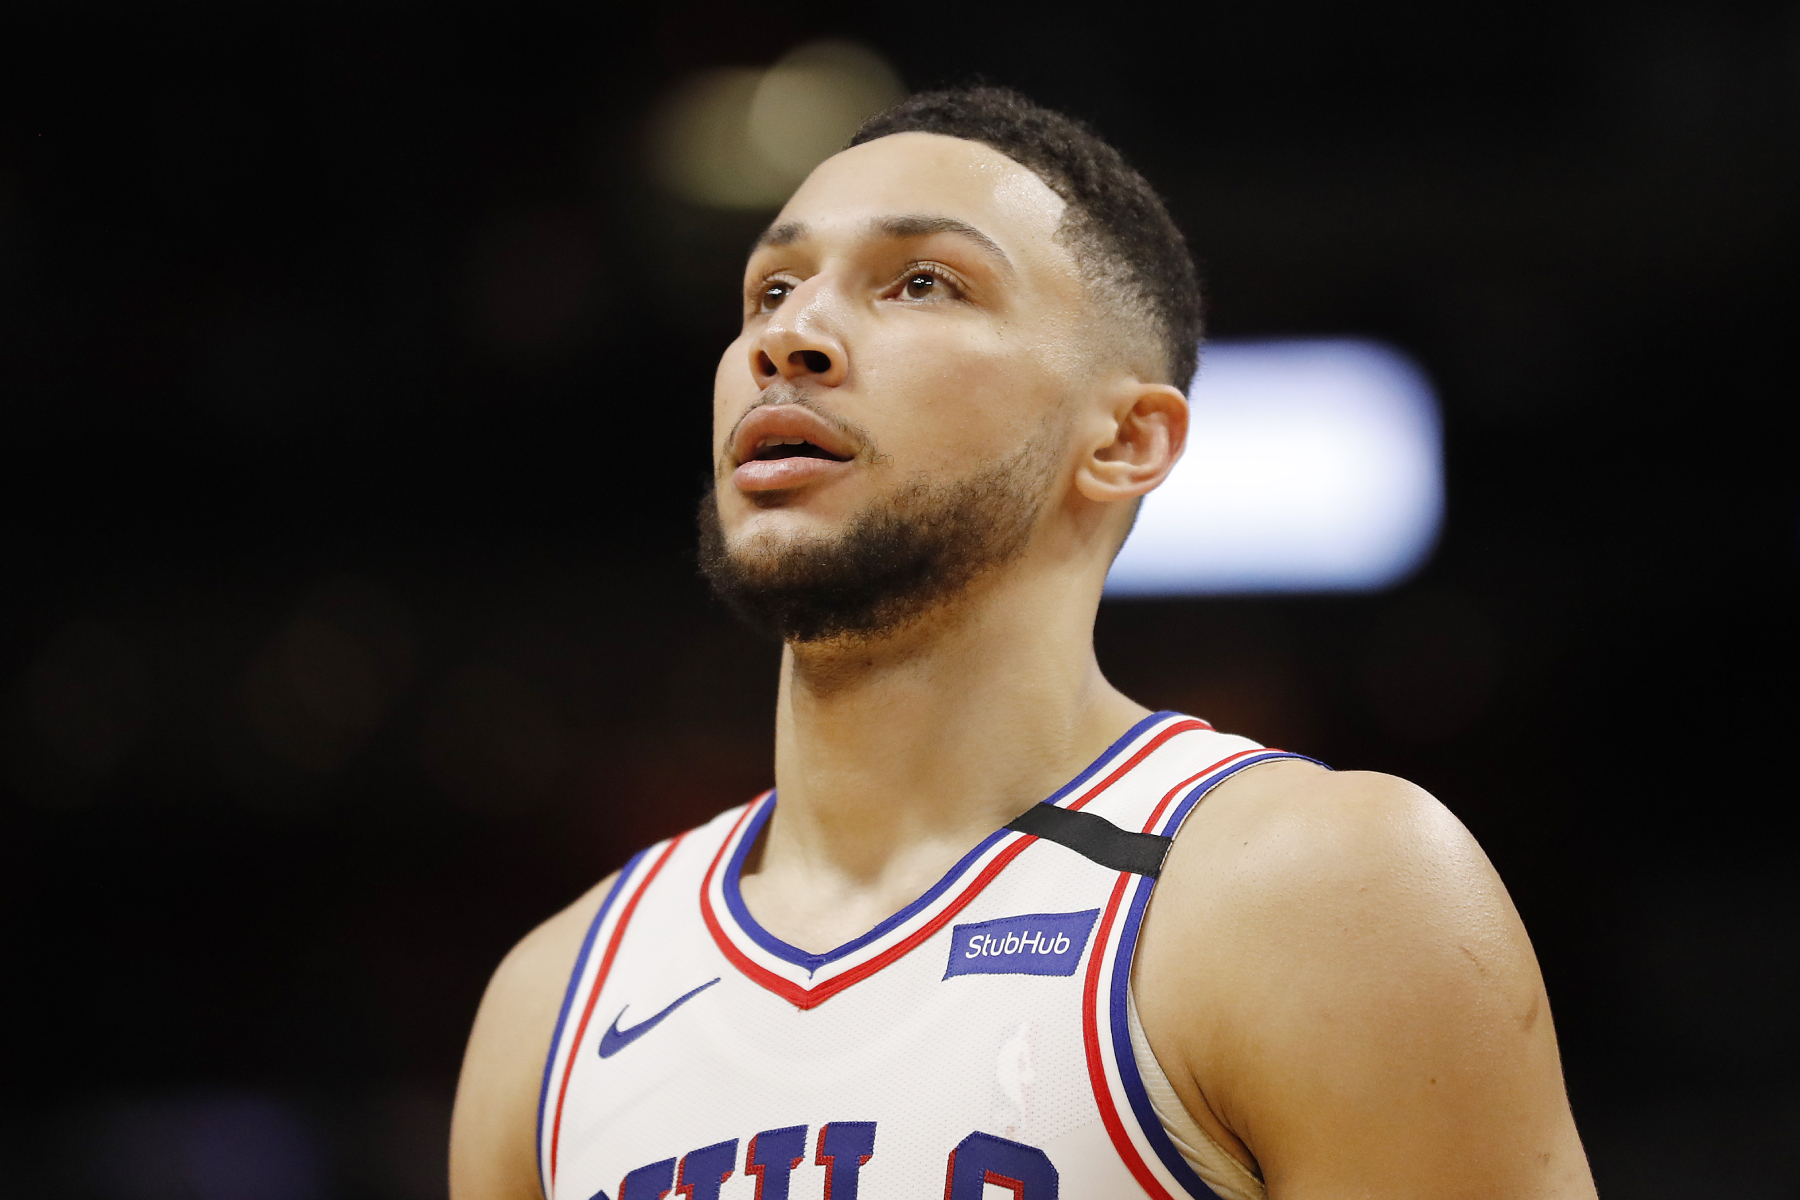 Ben Simmons has been great, but also disappointing, at times for the Philadelphia 76ers. Could he actually be getting replaced?